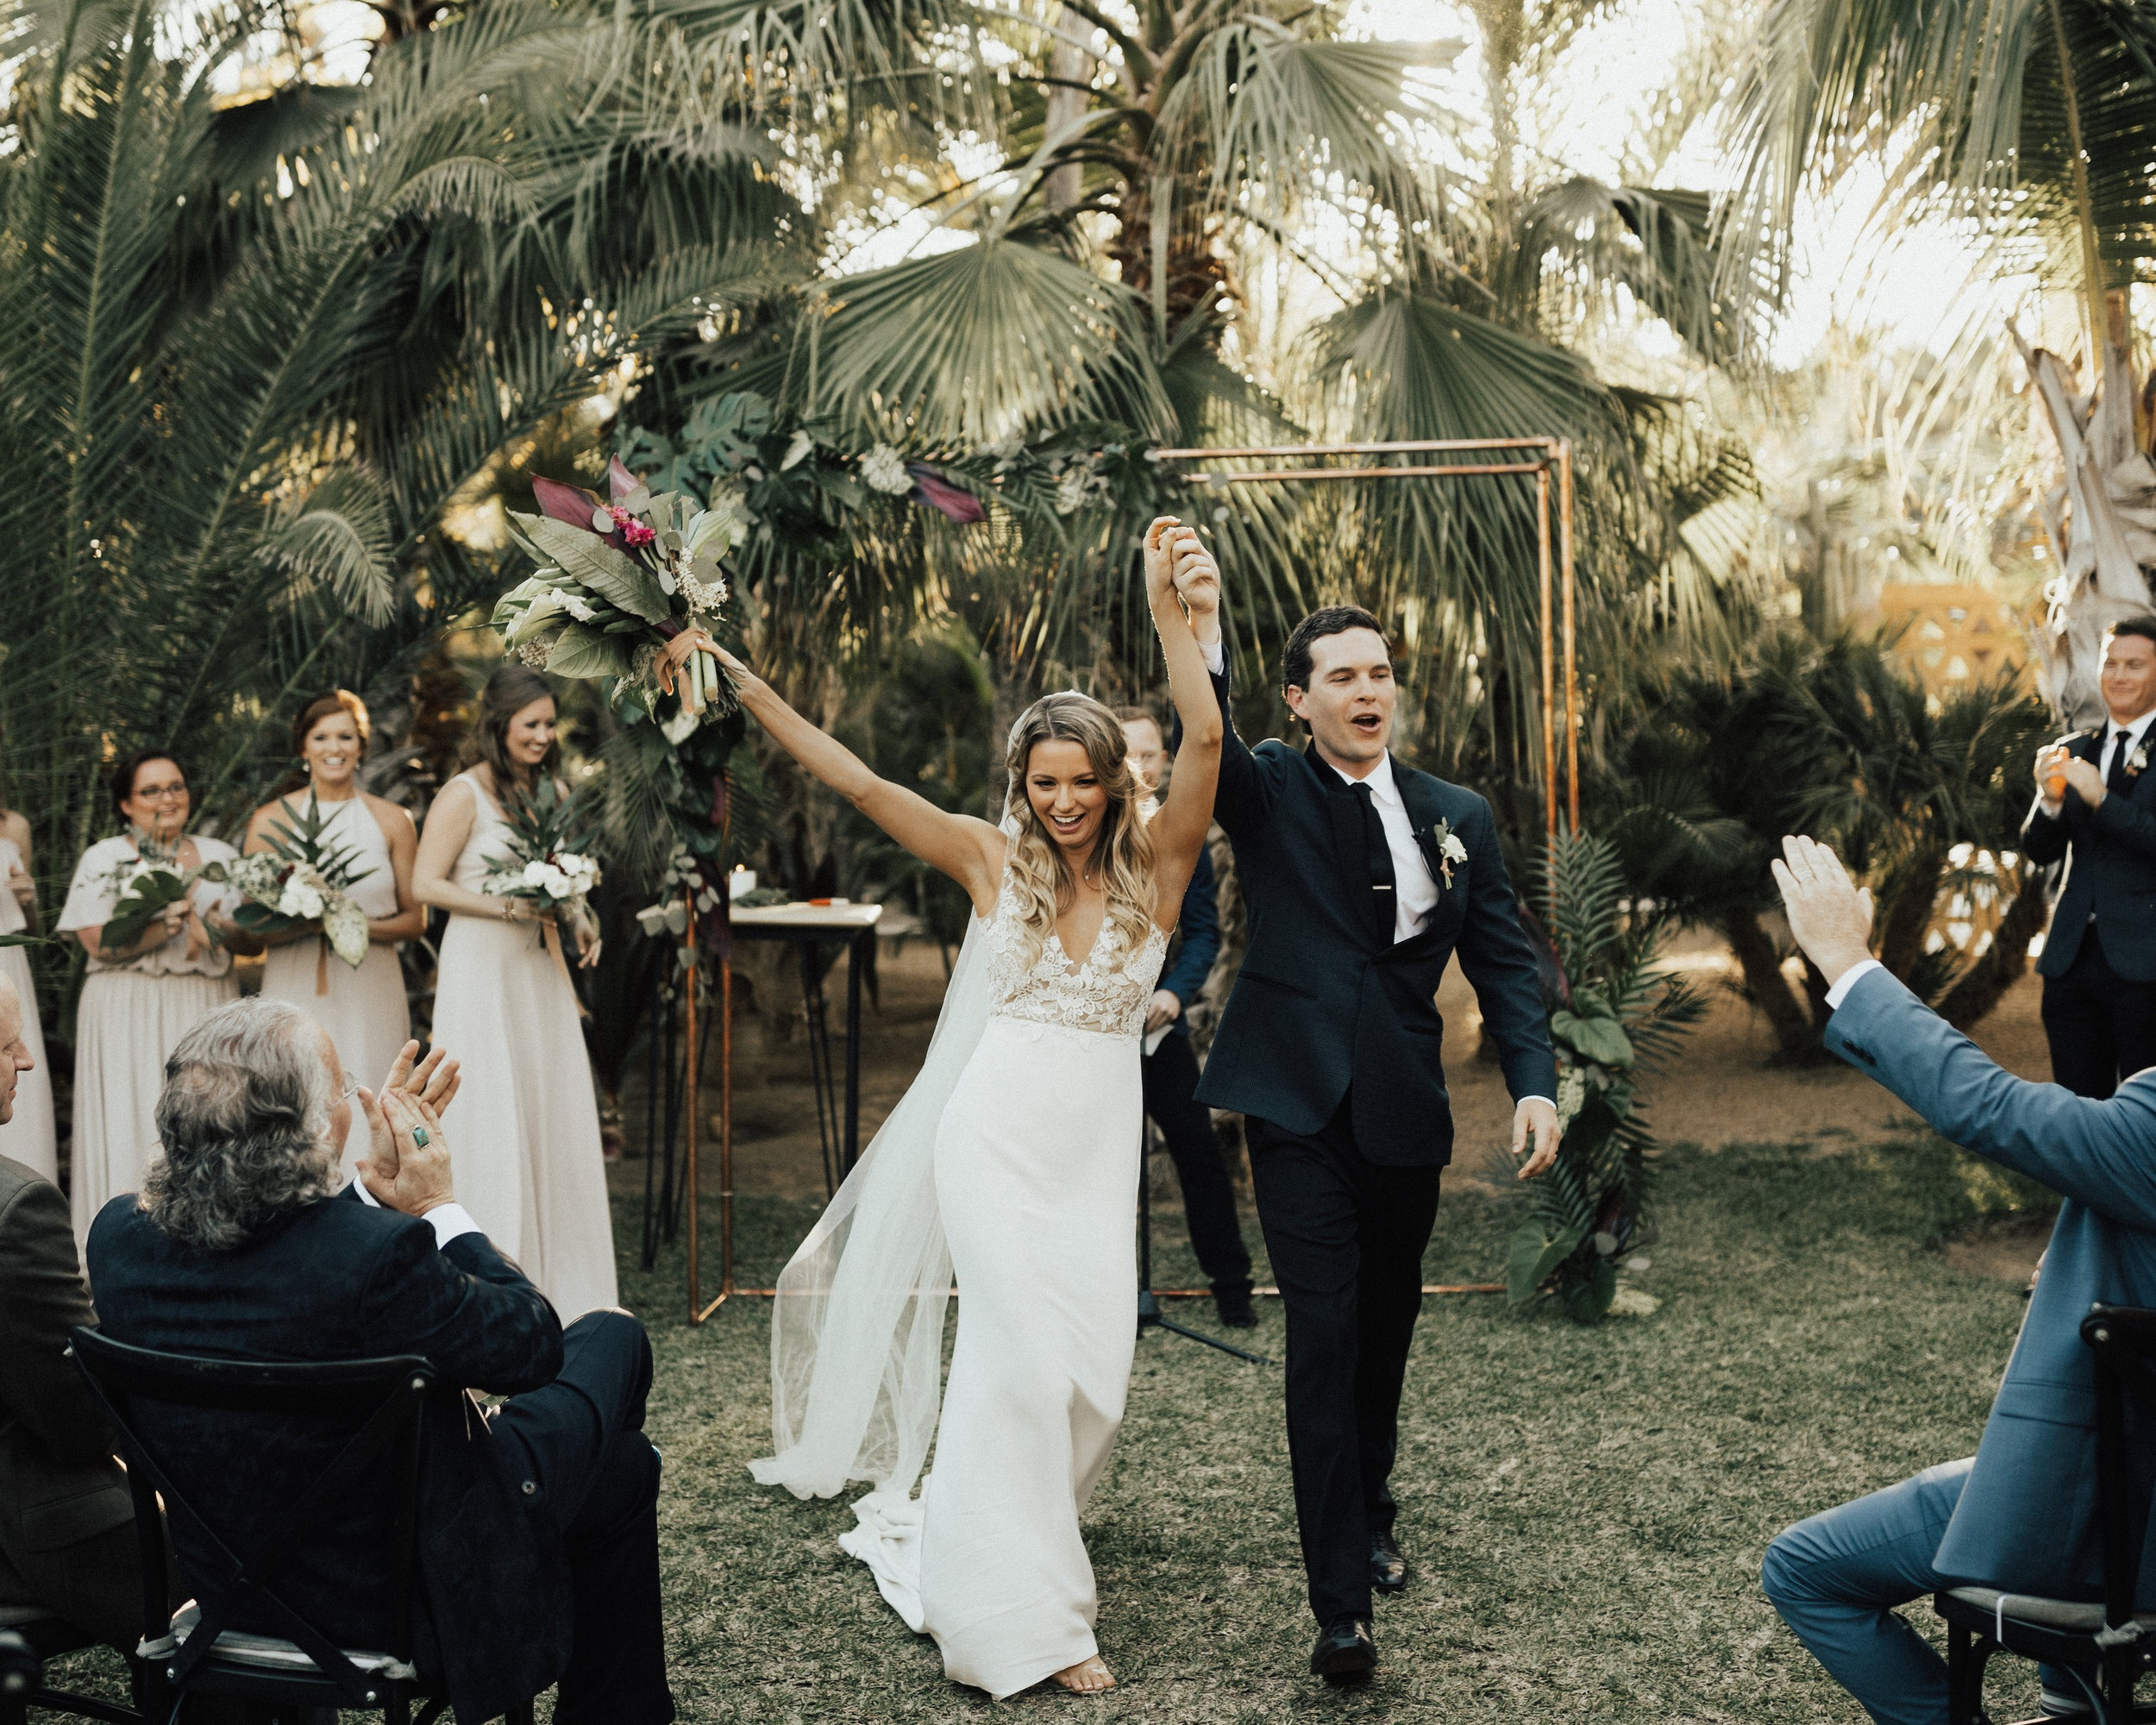 Jamie & Blake's primary focus was finding a venue that was both naturally beautiful and a place where their guests would have an amazing time. Acre Baja in San Jose del Cabo was the perfect location. The space had a farm-to-table restaurant, treehouse resort, and gorgeous wedding venue. It was love at first sight - from the palm tree jungle to the mango orchard that lit up at night. One of their favorite moments was entering the reception through a path lined with family & friends with sparklers. This led into the couple's first dance, featuring a surprise saxophone player to Stevie Wonder's 'For Once in My Life'. It was everything they dreamt of and more.